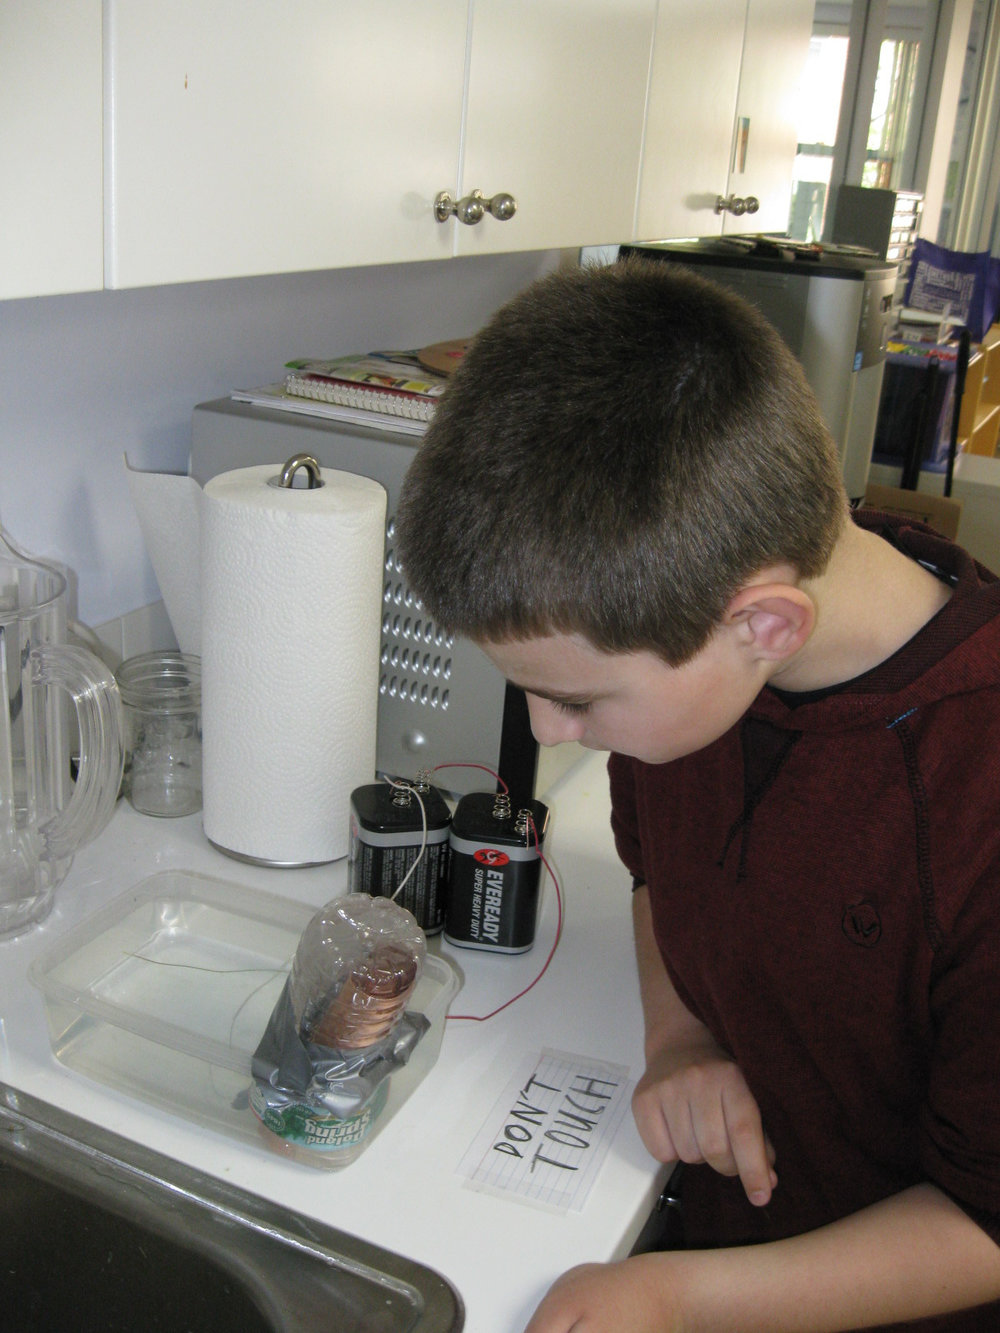 One Middle School student split water to produce hydrogen and oxygen in a Hoffman apparatus.